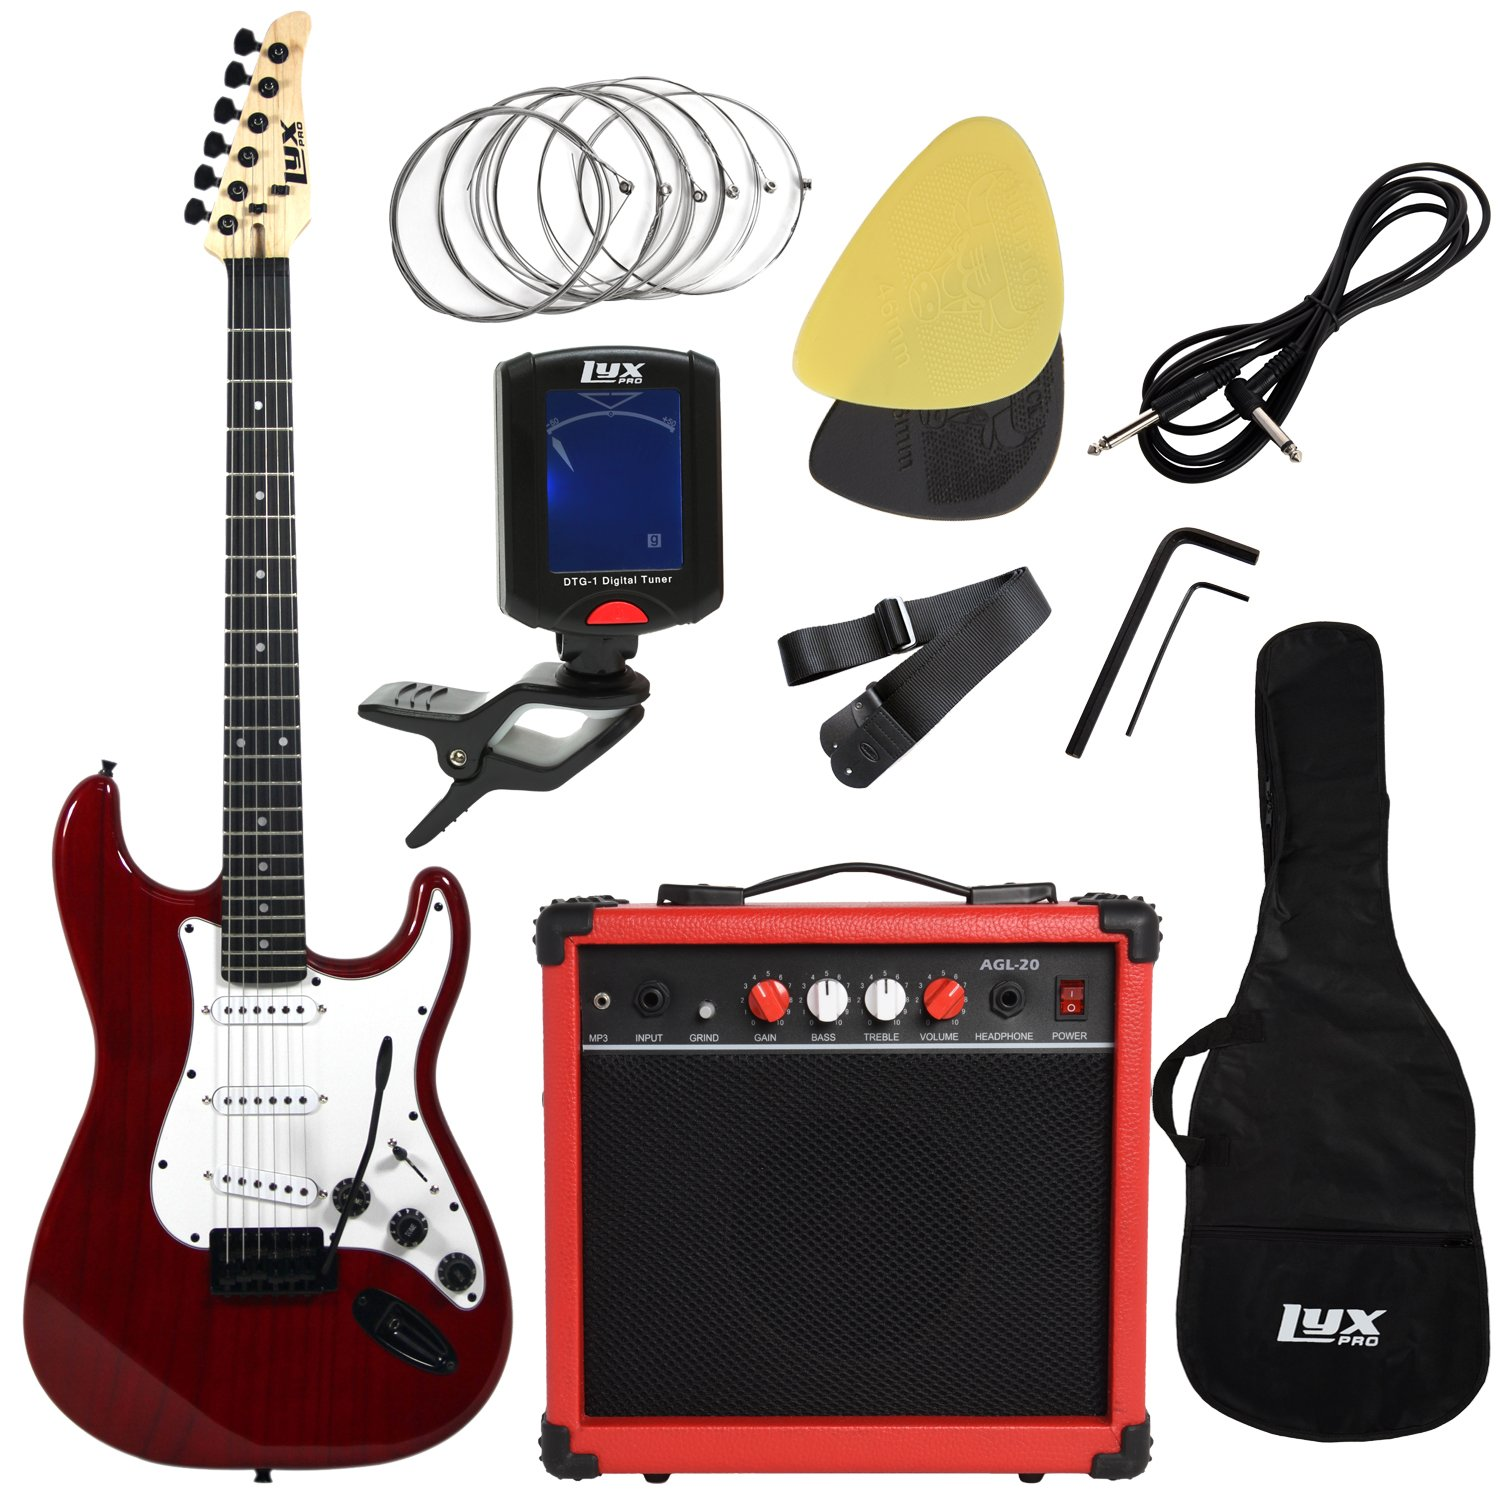 LyxPro Full Size Electric Guitar with 20w Amp, Package Includes All Accessories, Digital Tuner, Strings, Picks, Tremolo Bar, Shoulder Strap, and Case Bag Complete Beginner Starter kit Pack,Sunburst EGBK0030S